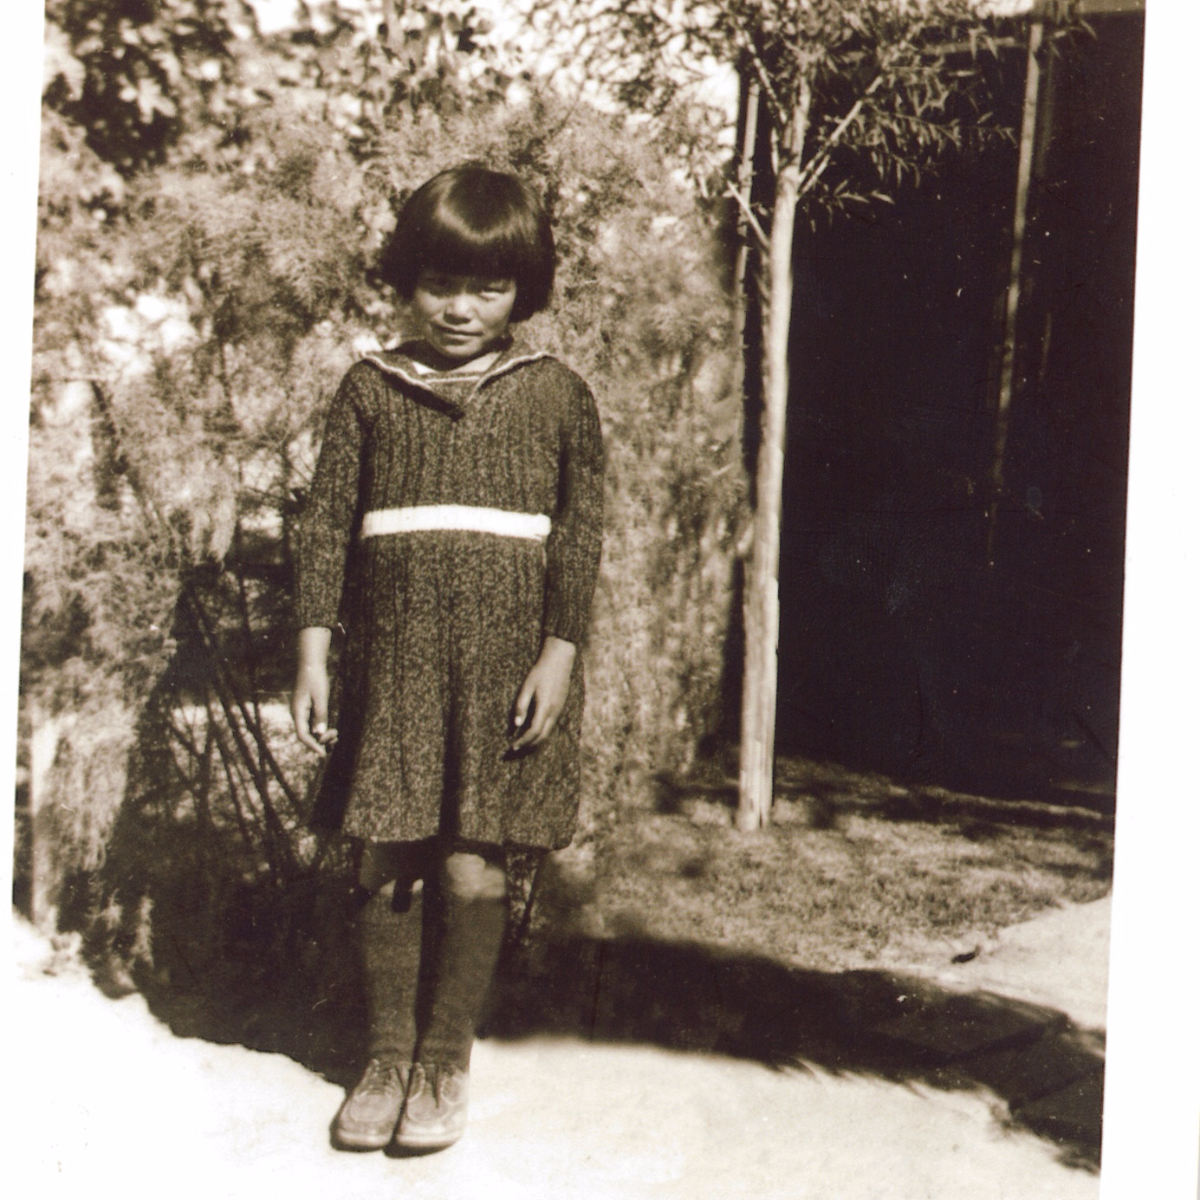 Jean Mishima at age 6 when she was taken to the internment camp in Gila River, Arizona. (Courtesy of Jean Mishima)